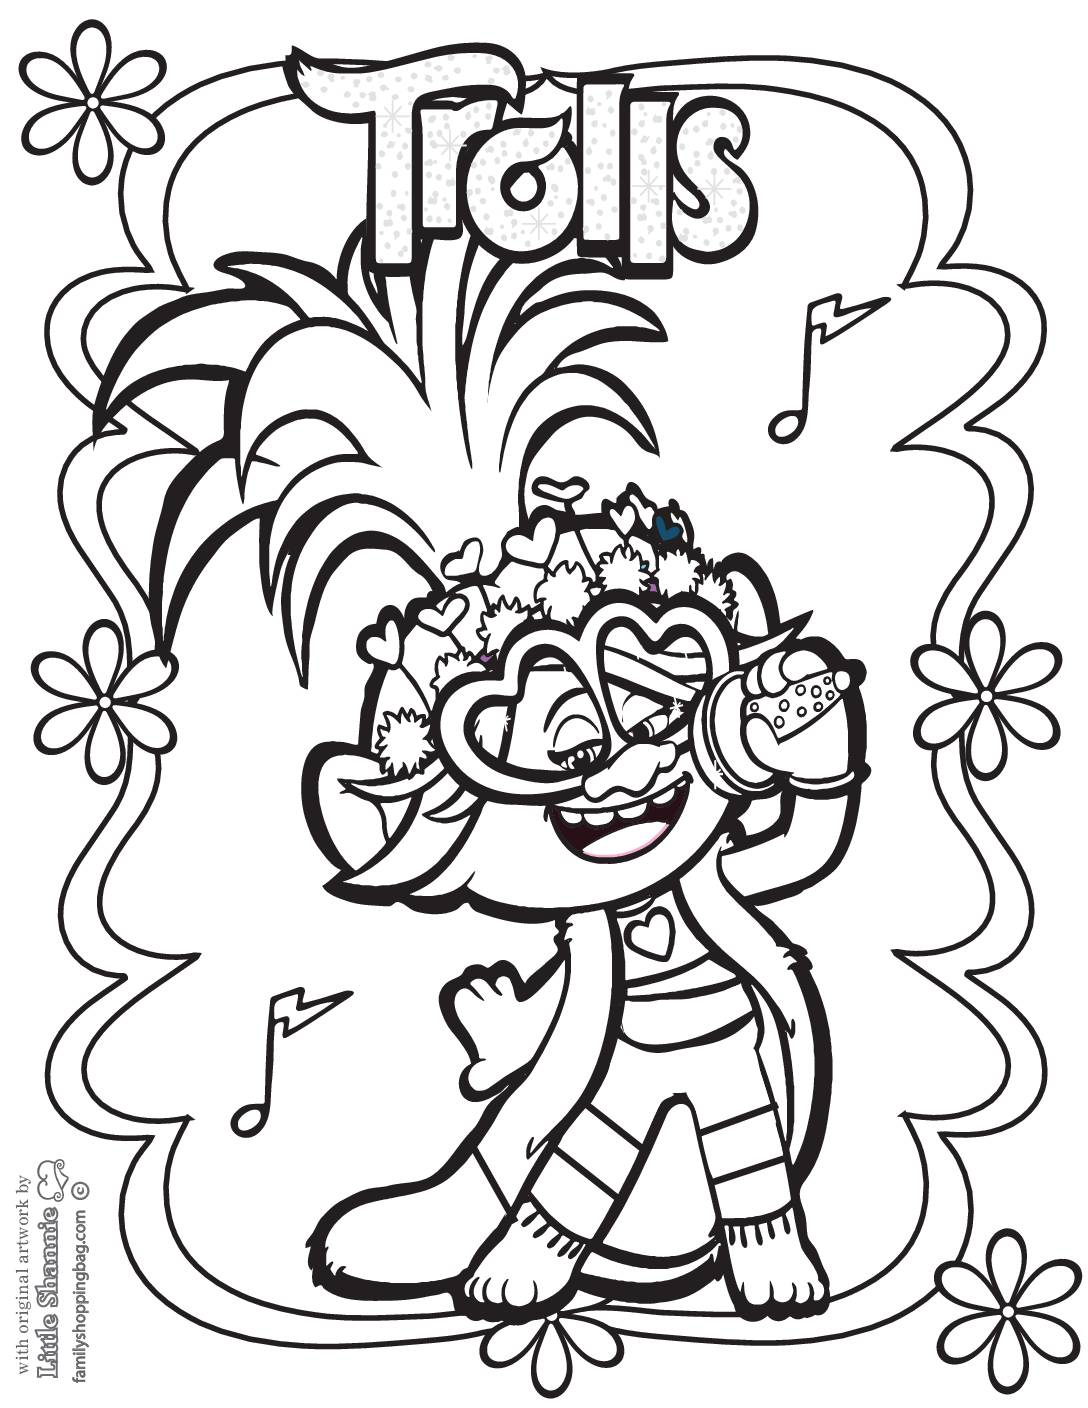 Coloring Page 2 Trolls